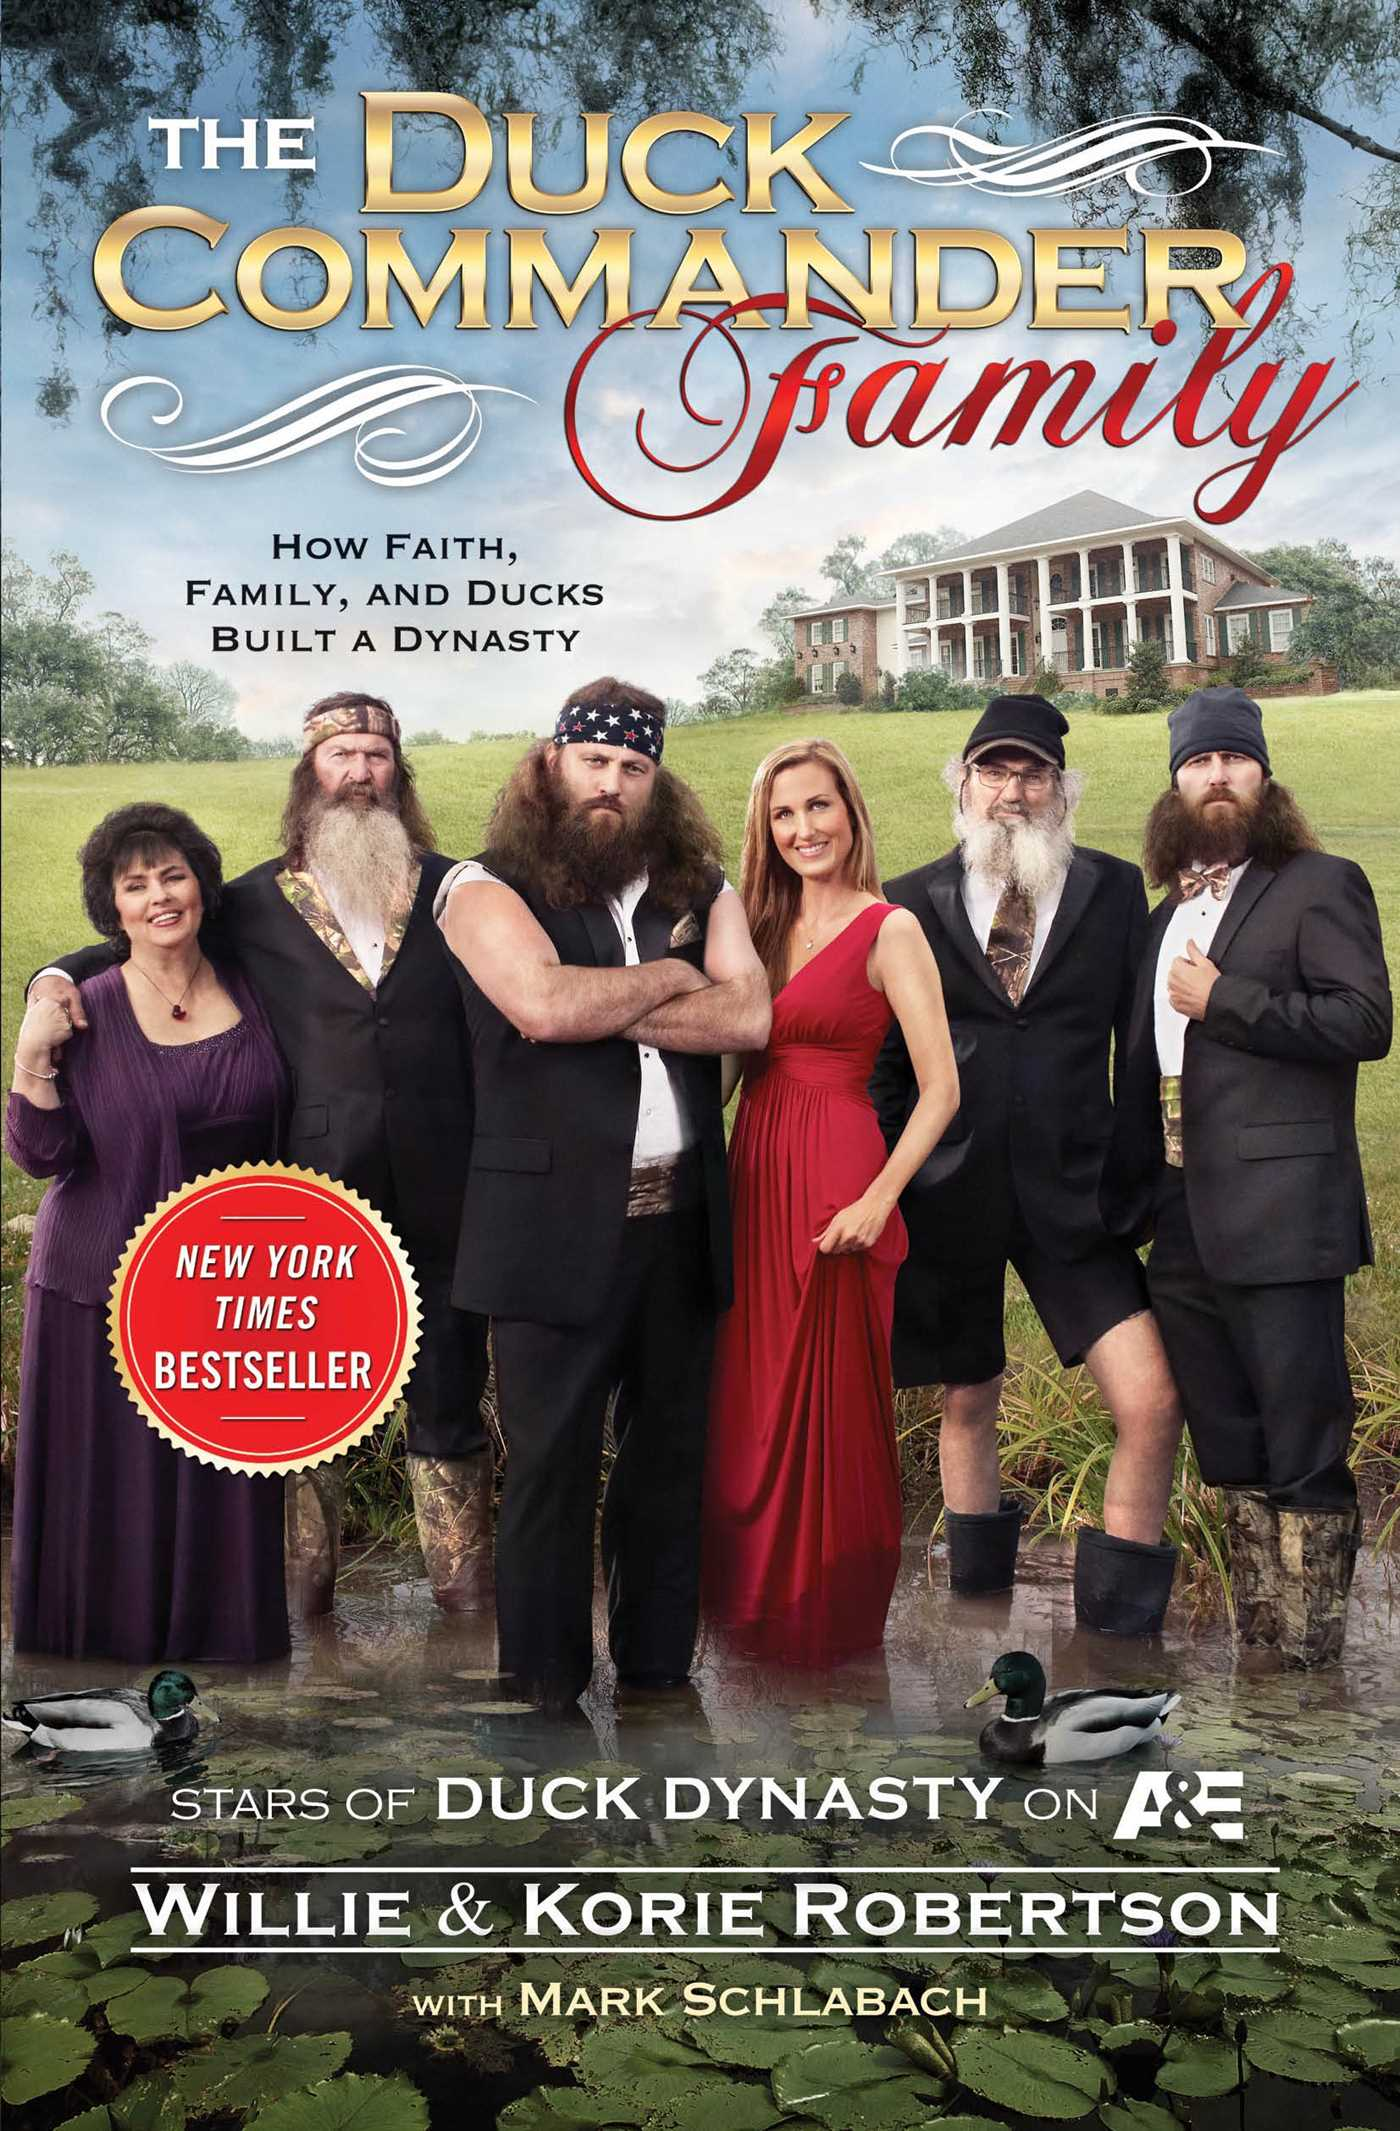 Duck-commander-family-9781476703664_hr